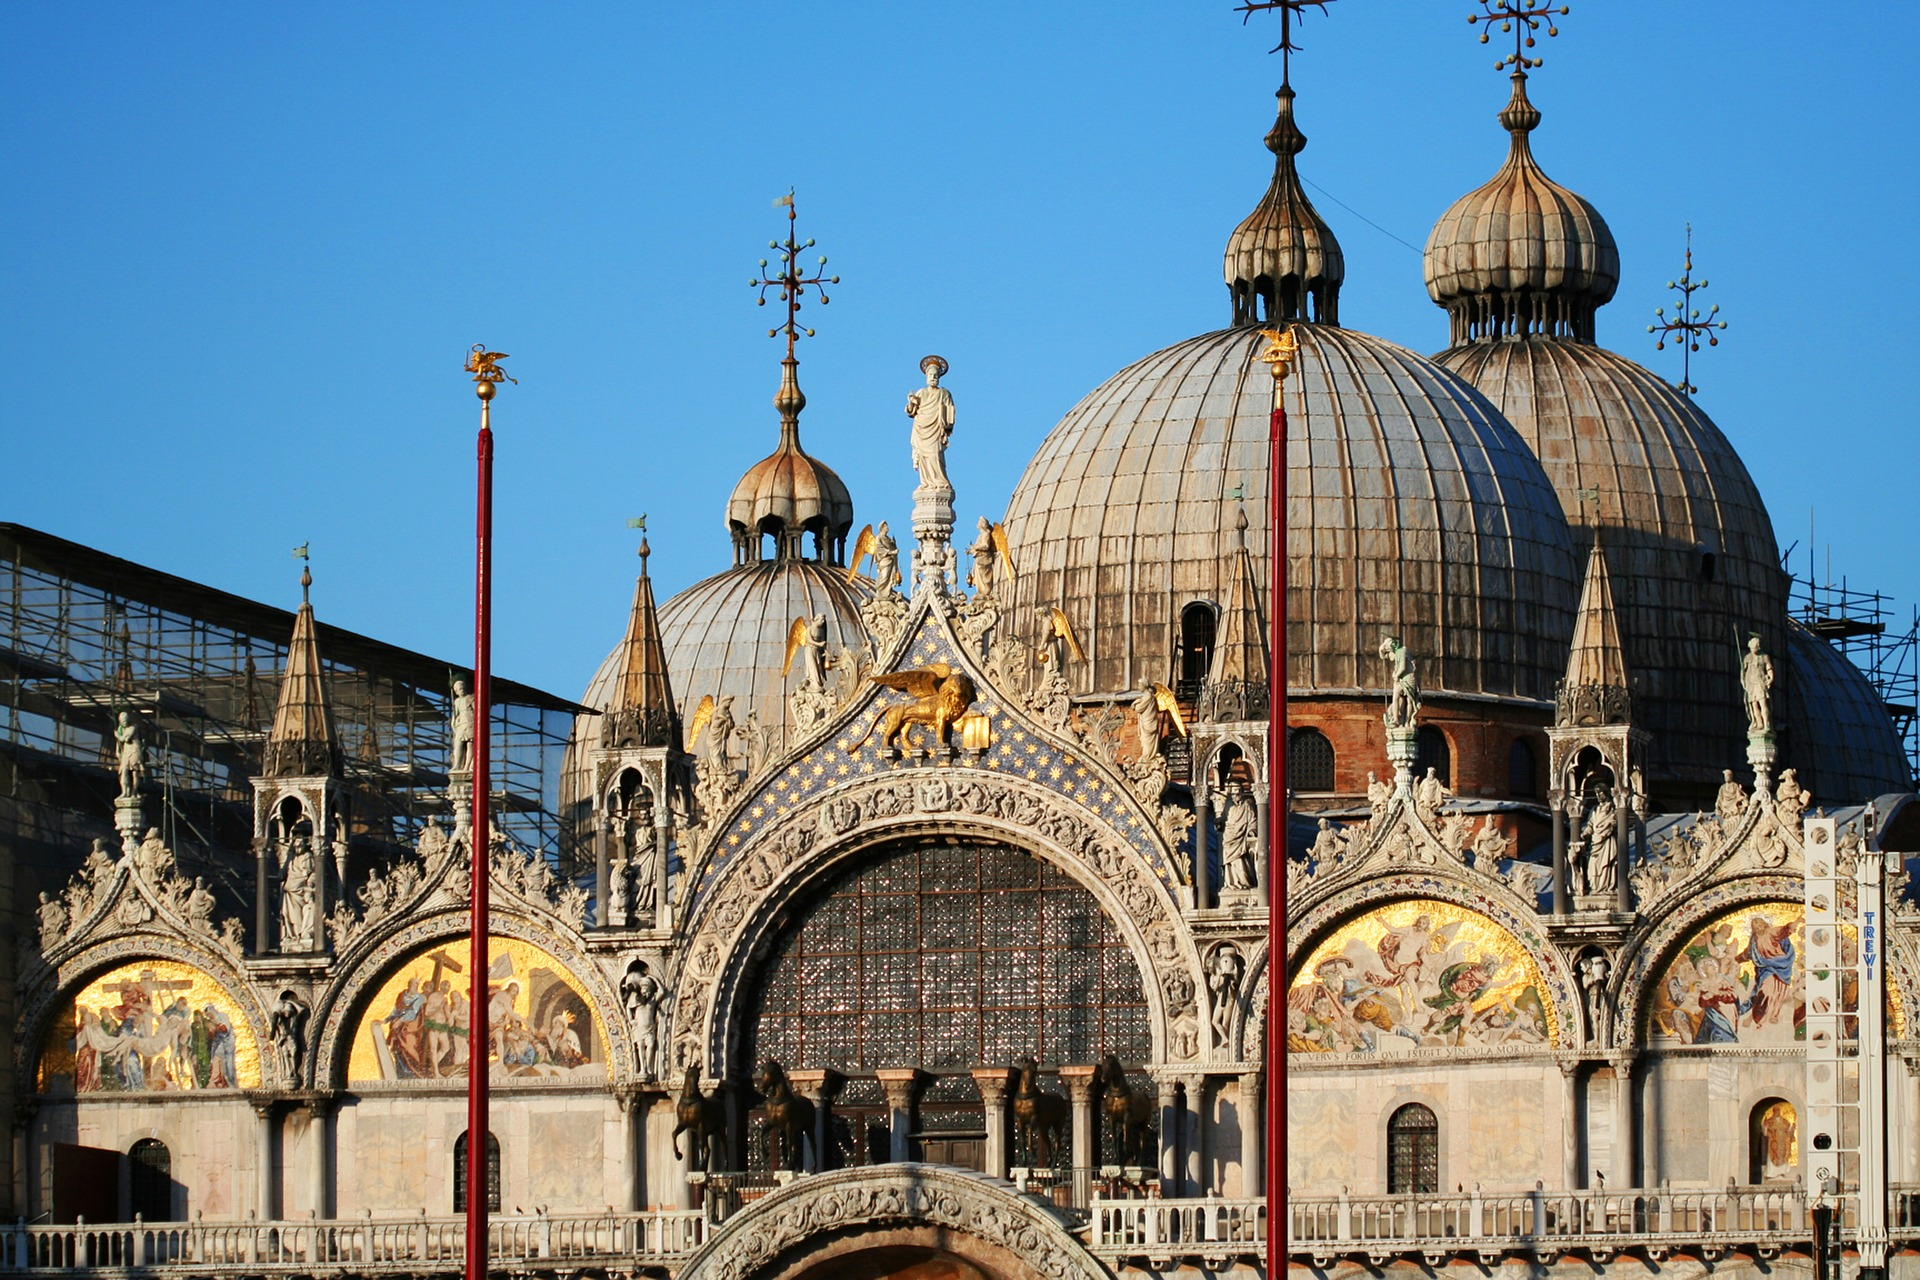 Dome of St. Mark's Basilica, Venice